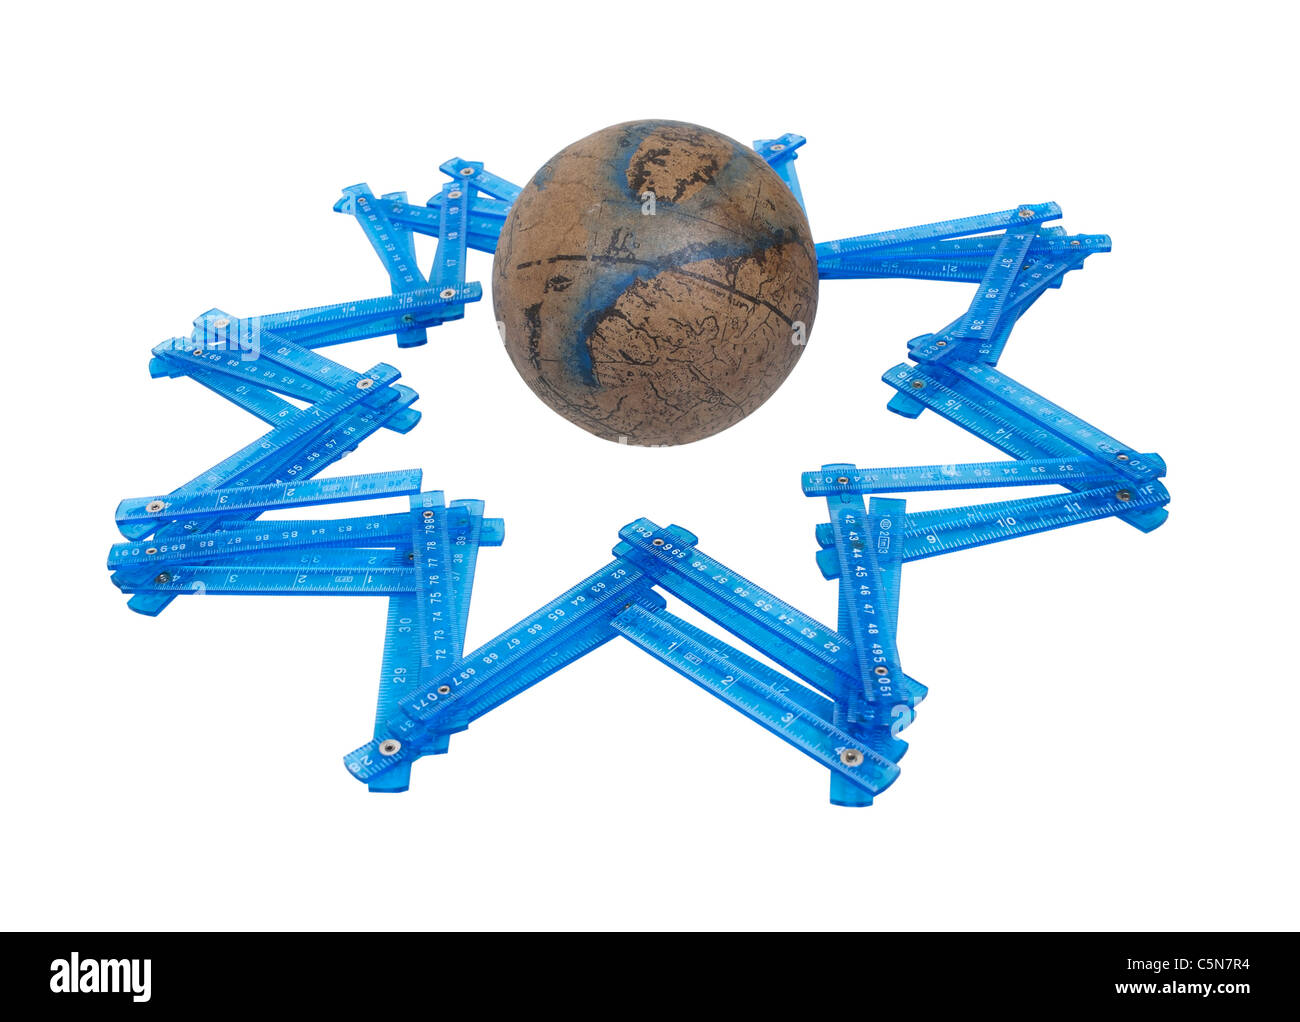 Measuring world stars shown by an old world globe with folding rulers making the shape of a star - path included - Stock Image